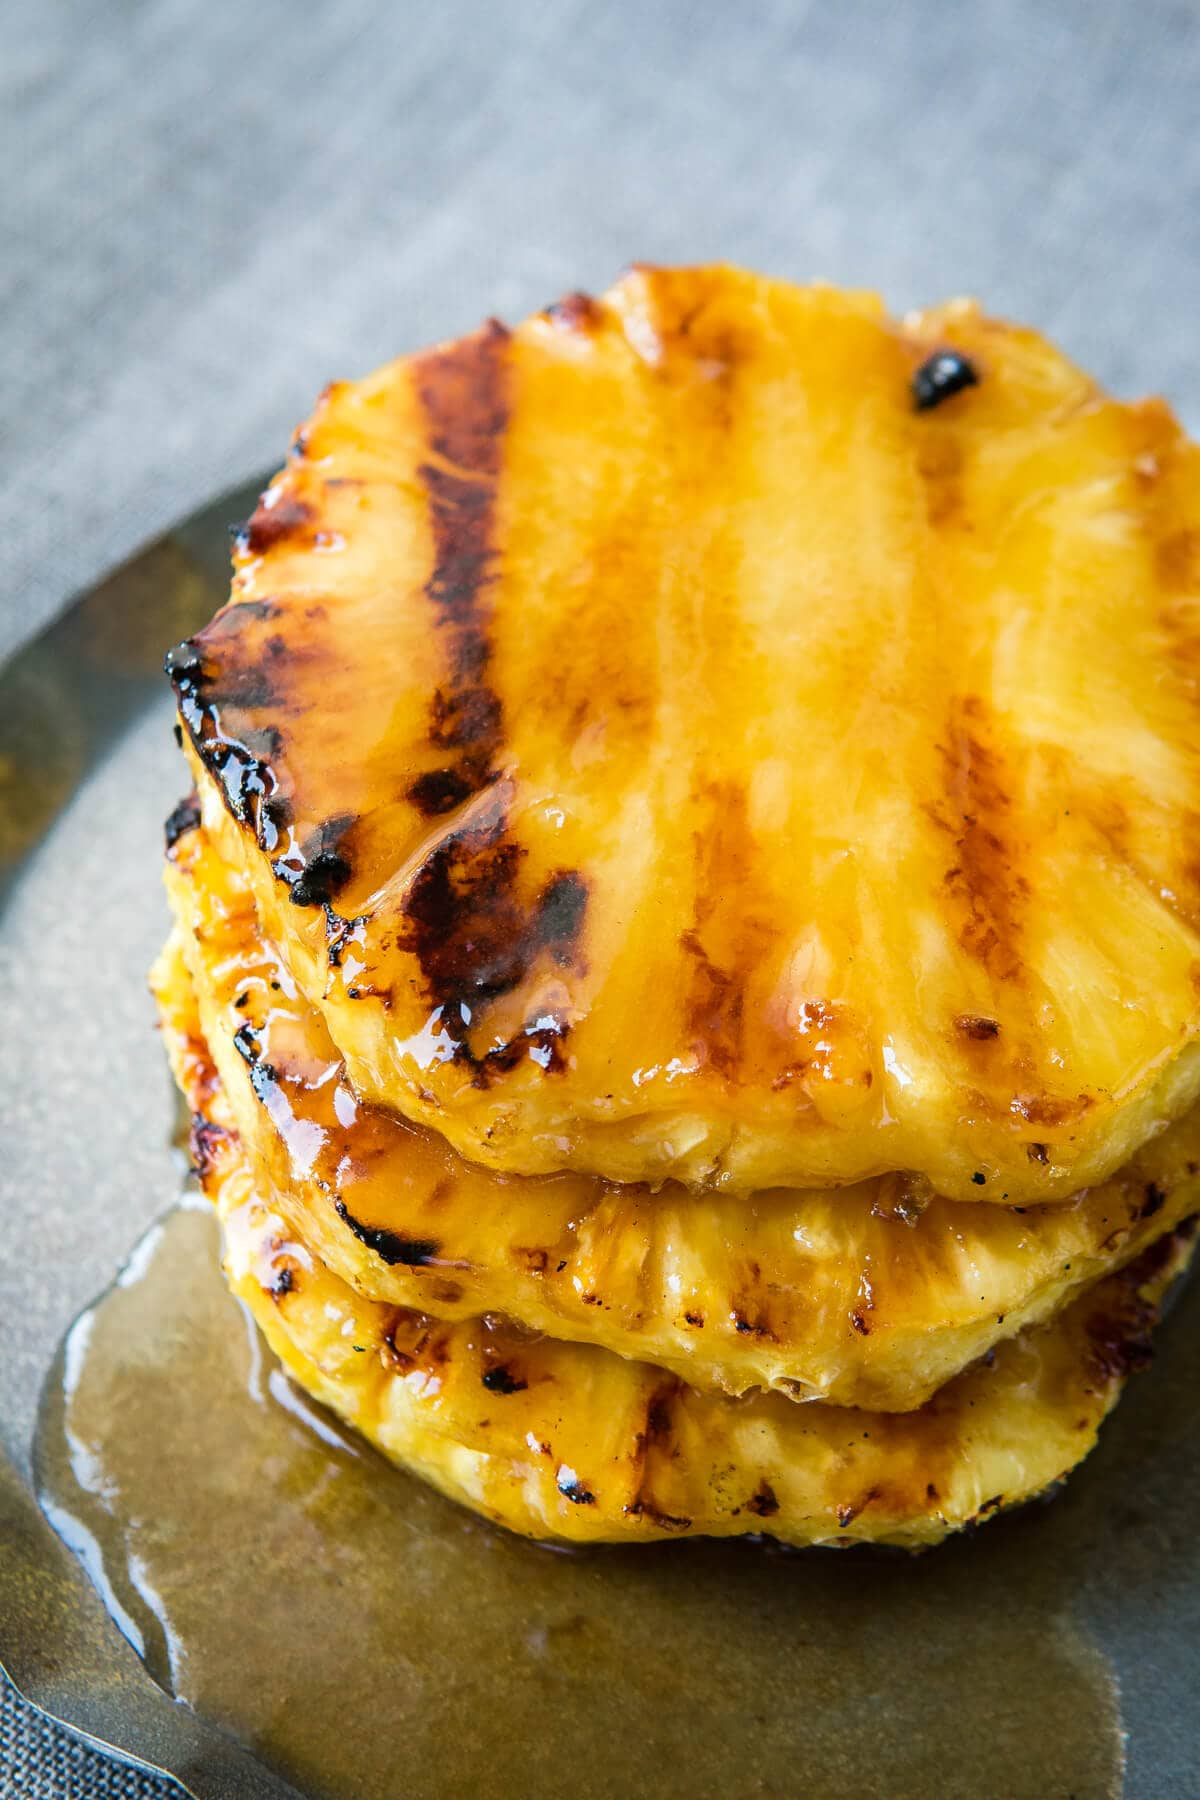 Leave the core in your pineapple to make for easier grilling on the bbq! ohsweetbasil.com